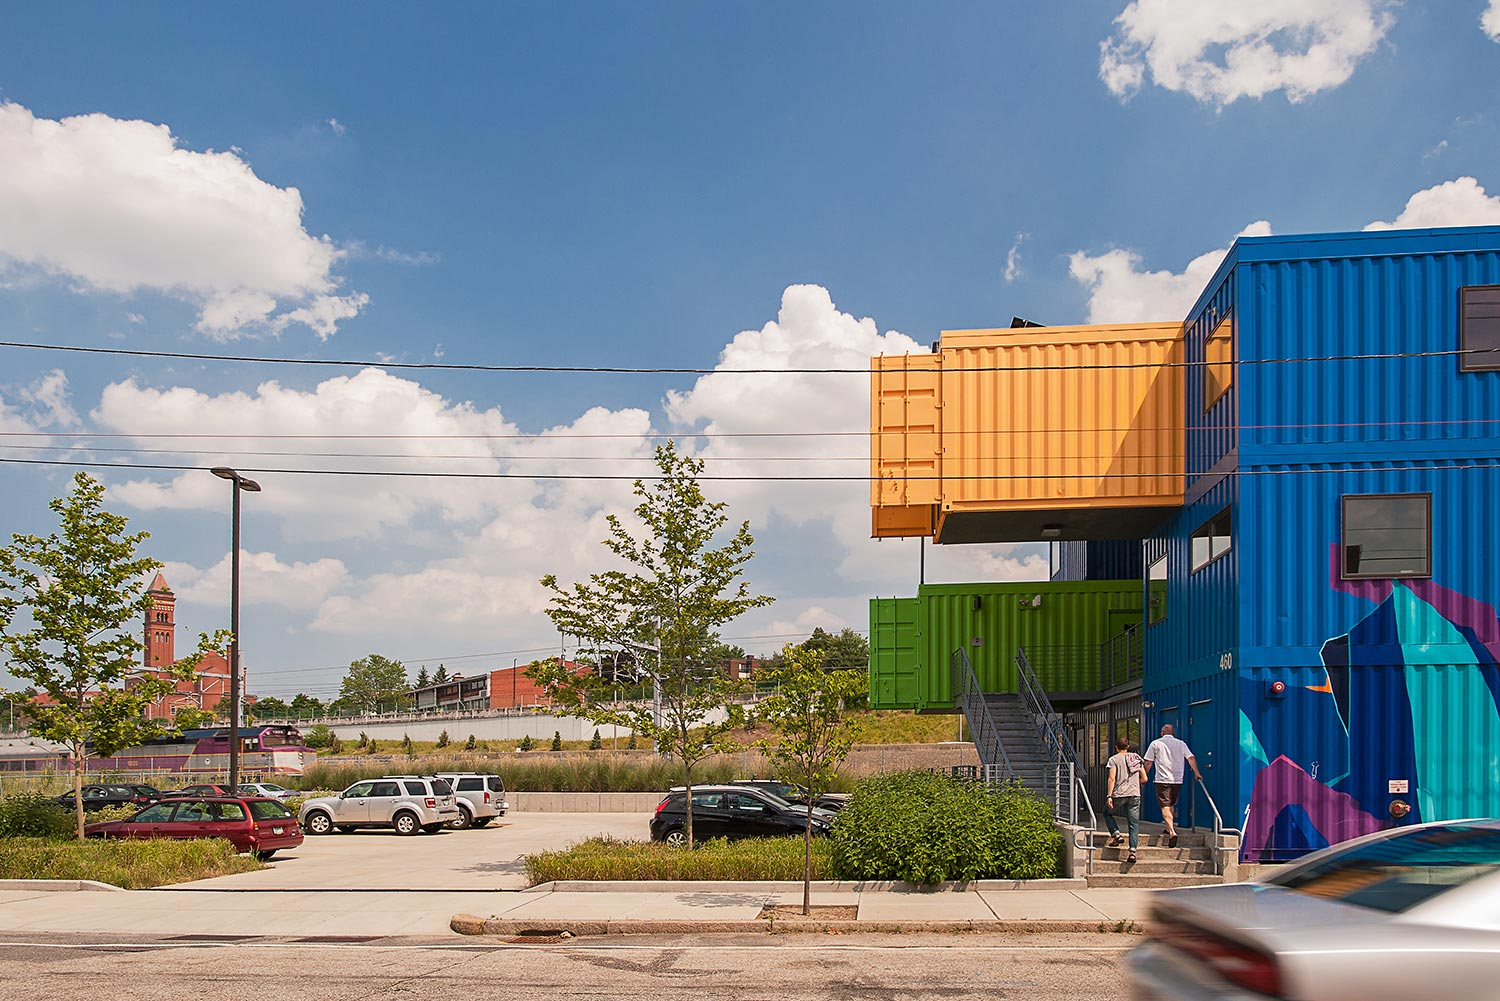 Box-Office_shipping-container-building-mural_landscape-architecture_Klopfer-Martin.jpg